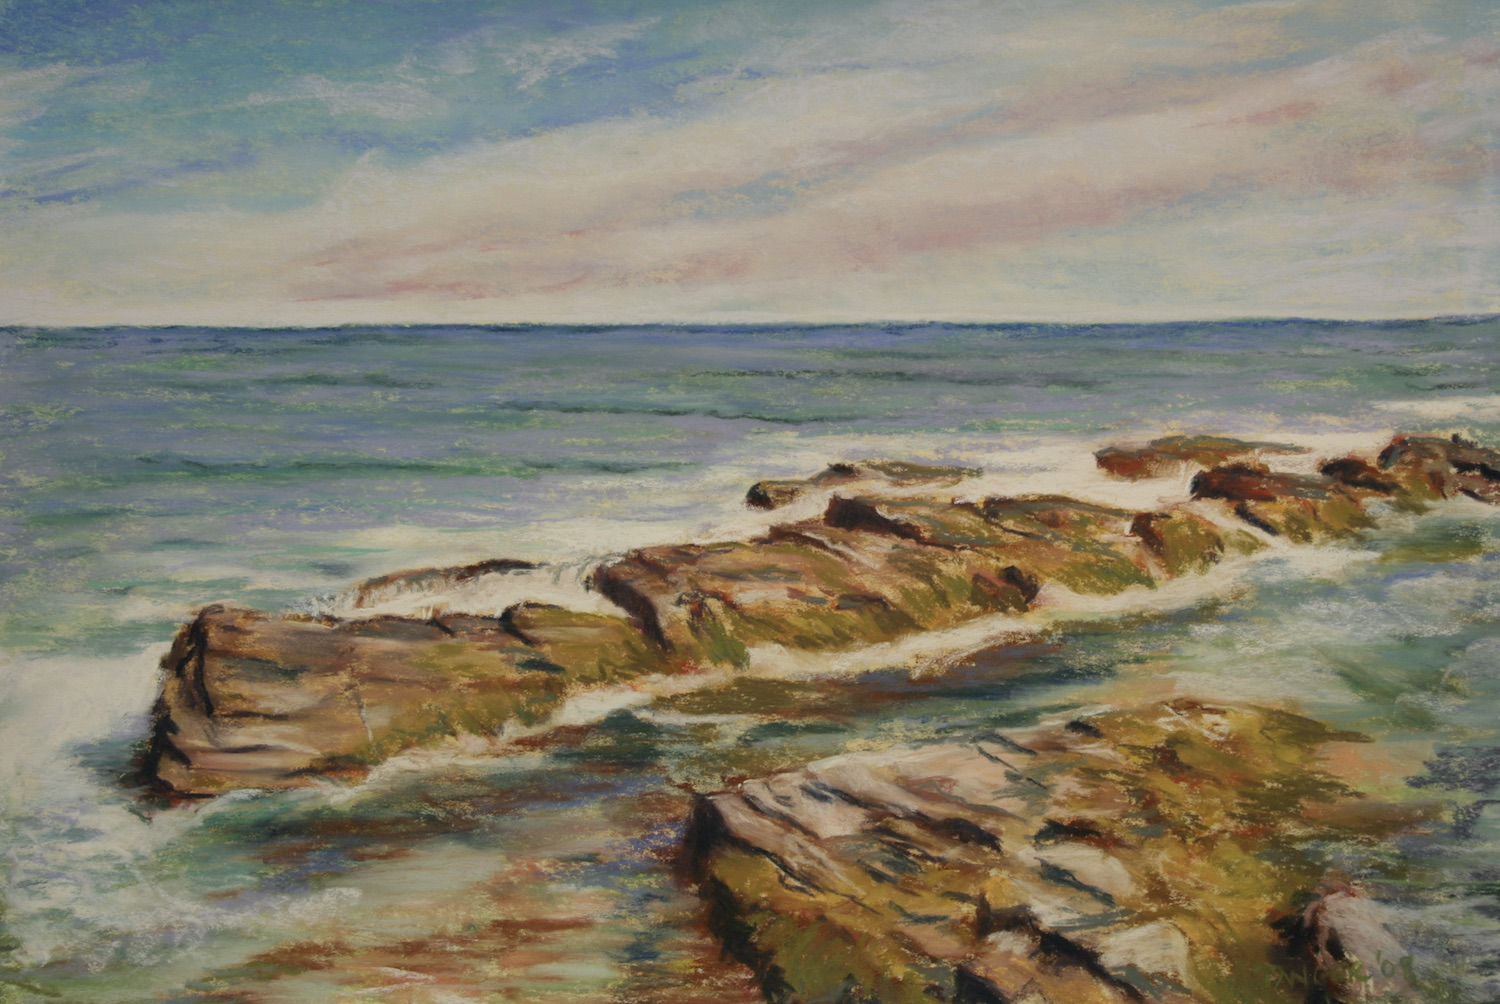 11 x 16 pastel of a tidal pool off the cliff walk in Newport for sale: $175